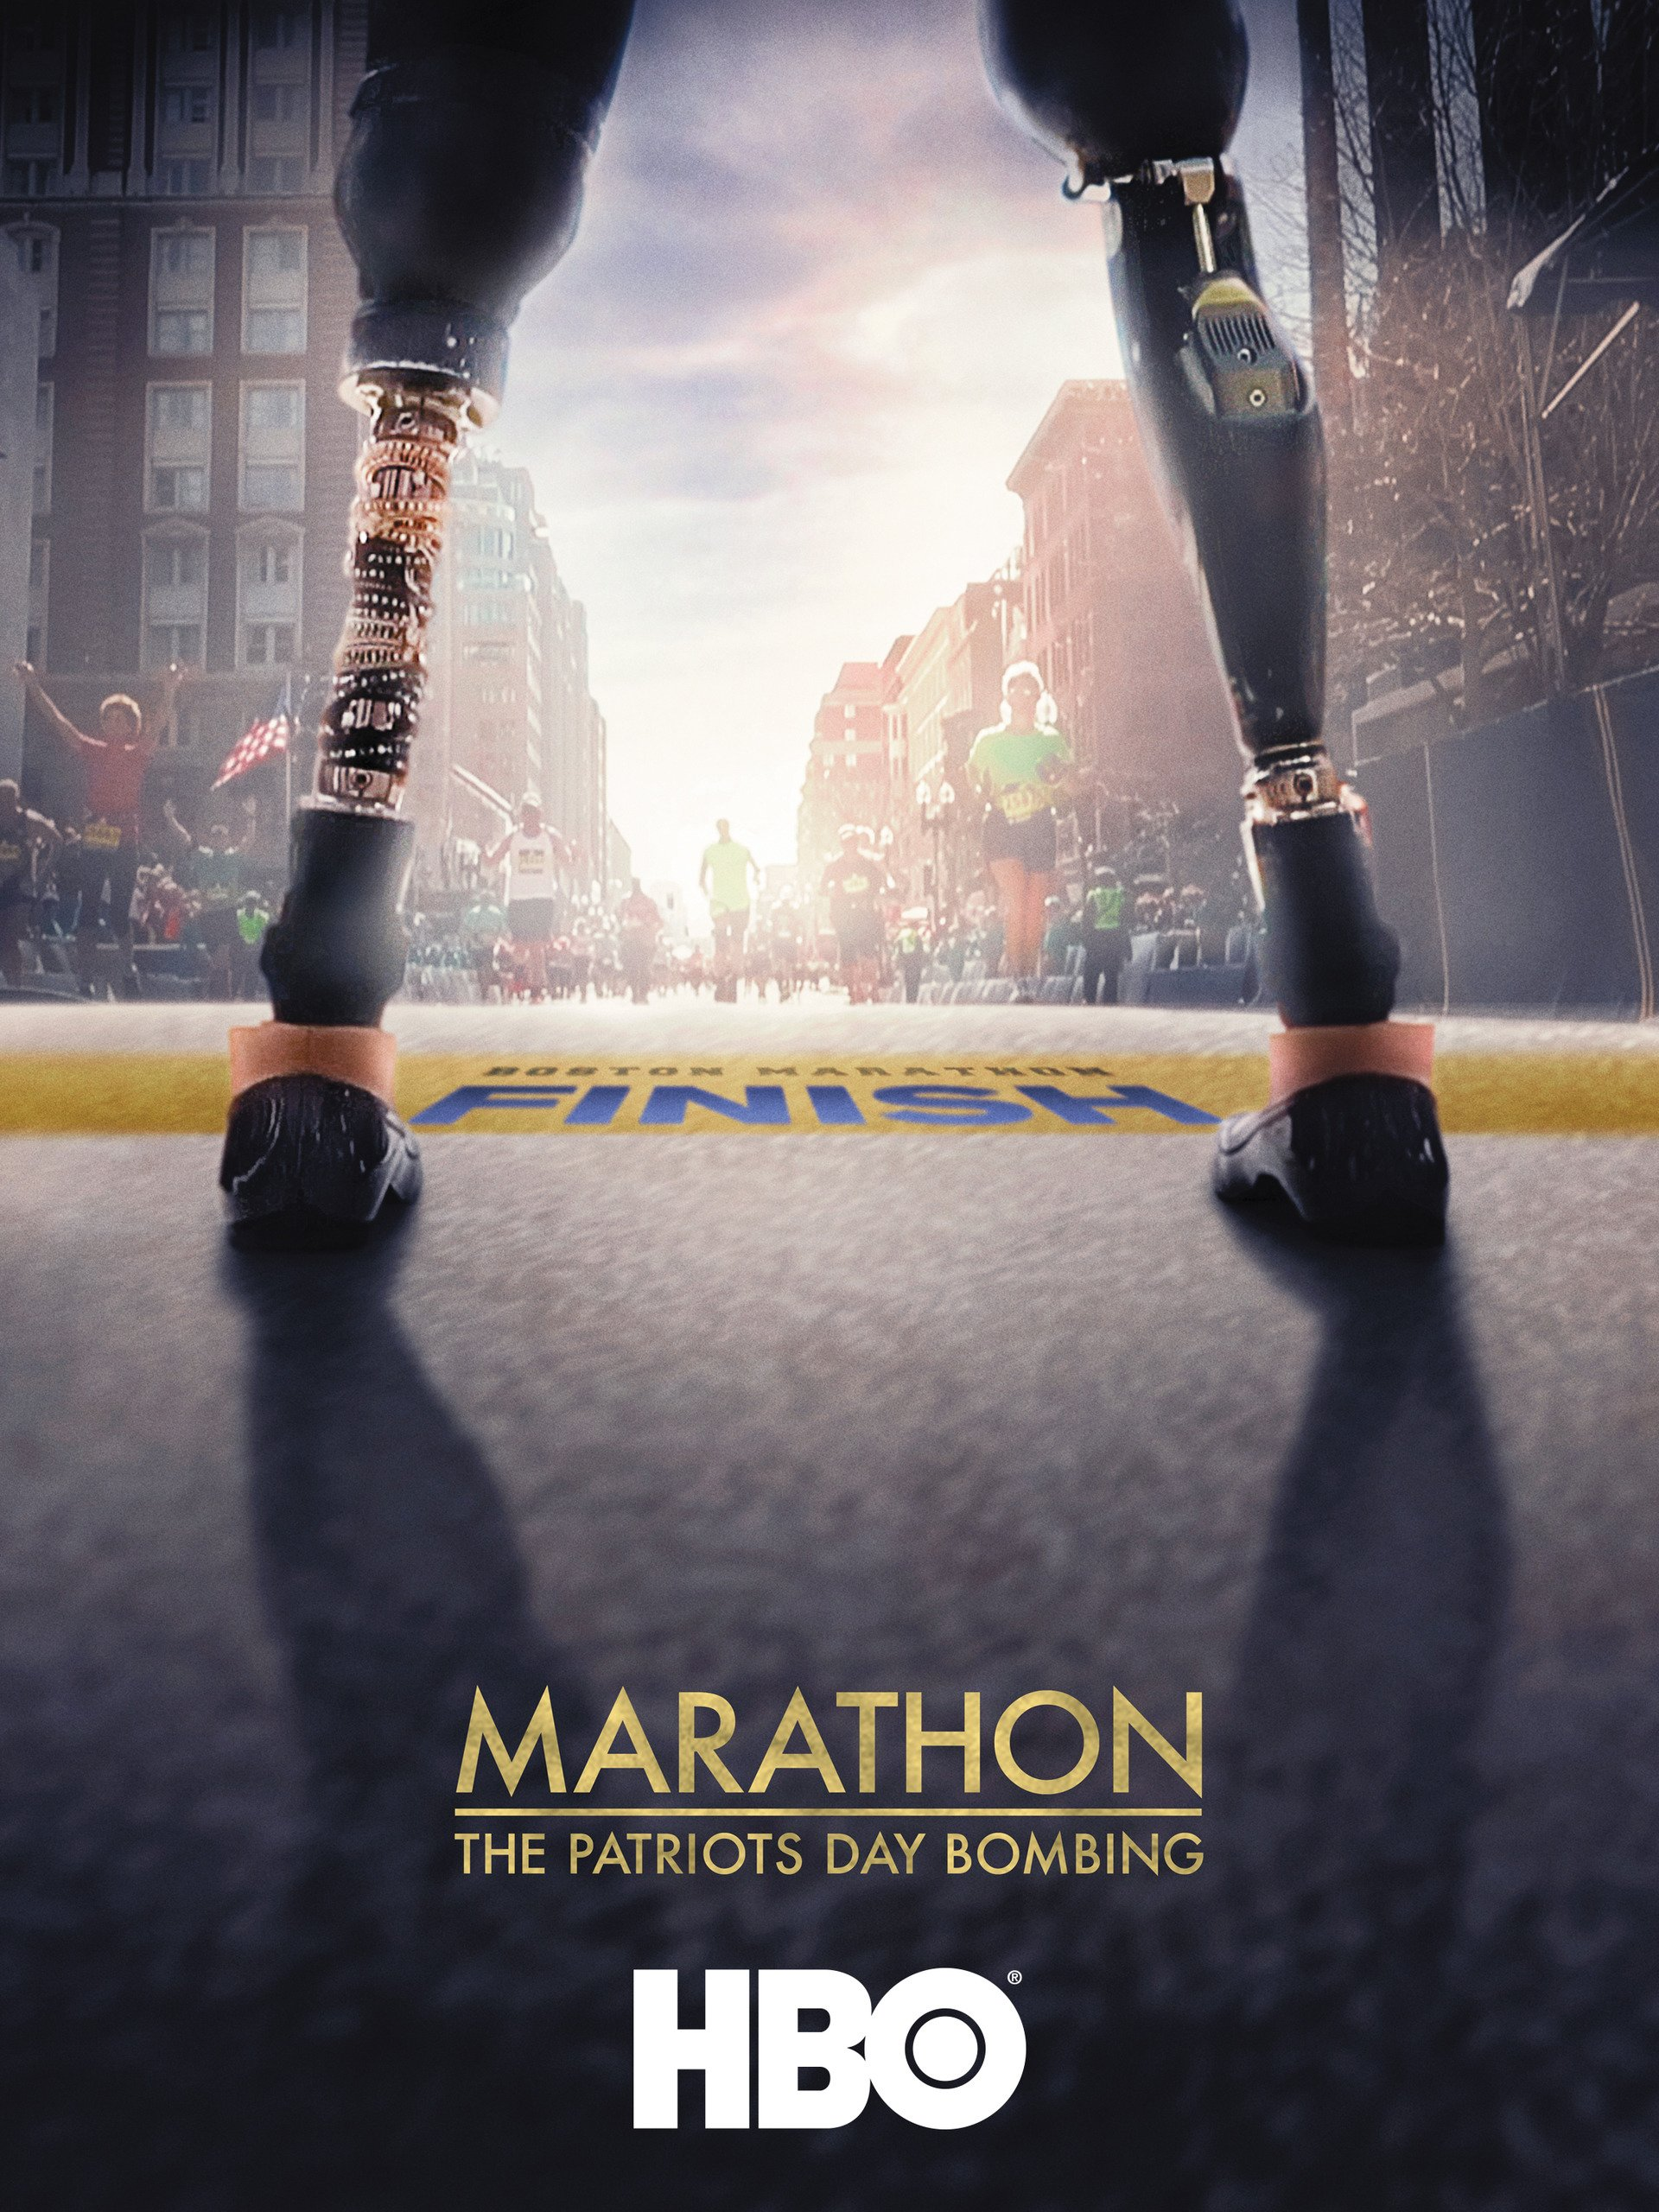 Marathon: The Patriots Day Bombing by